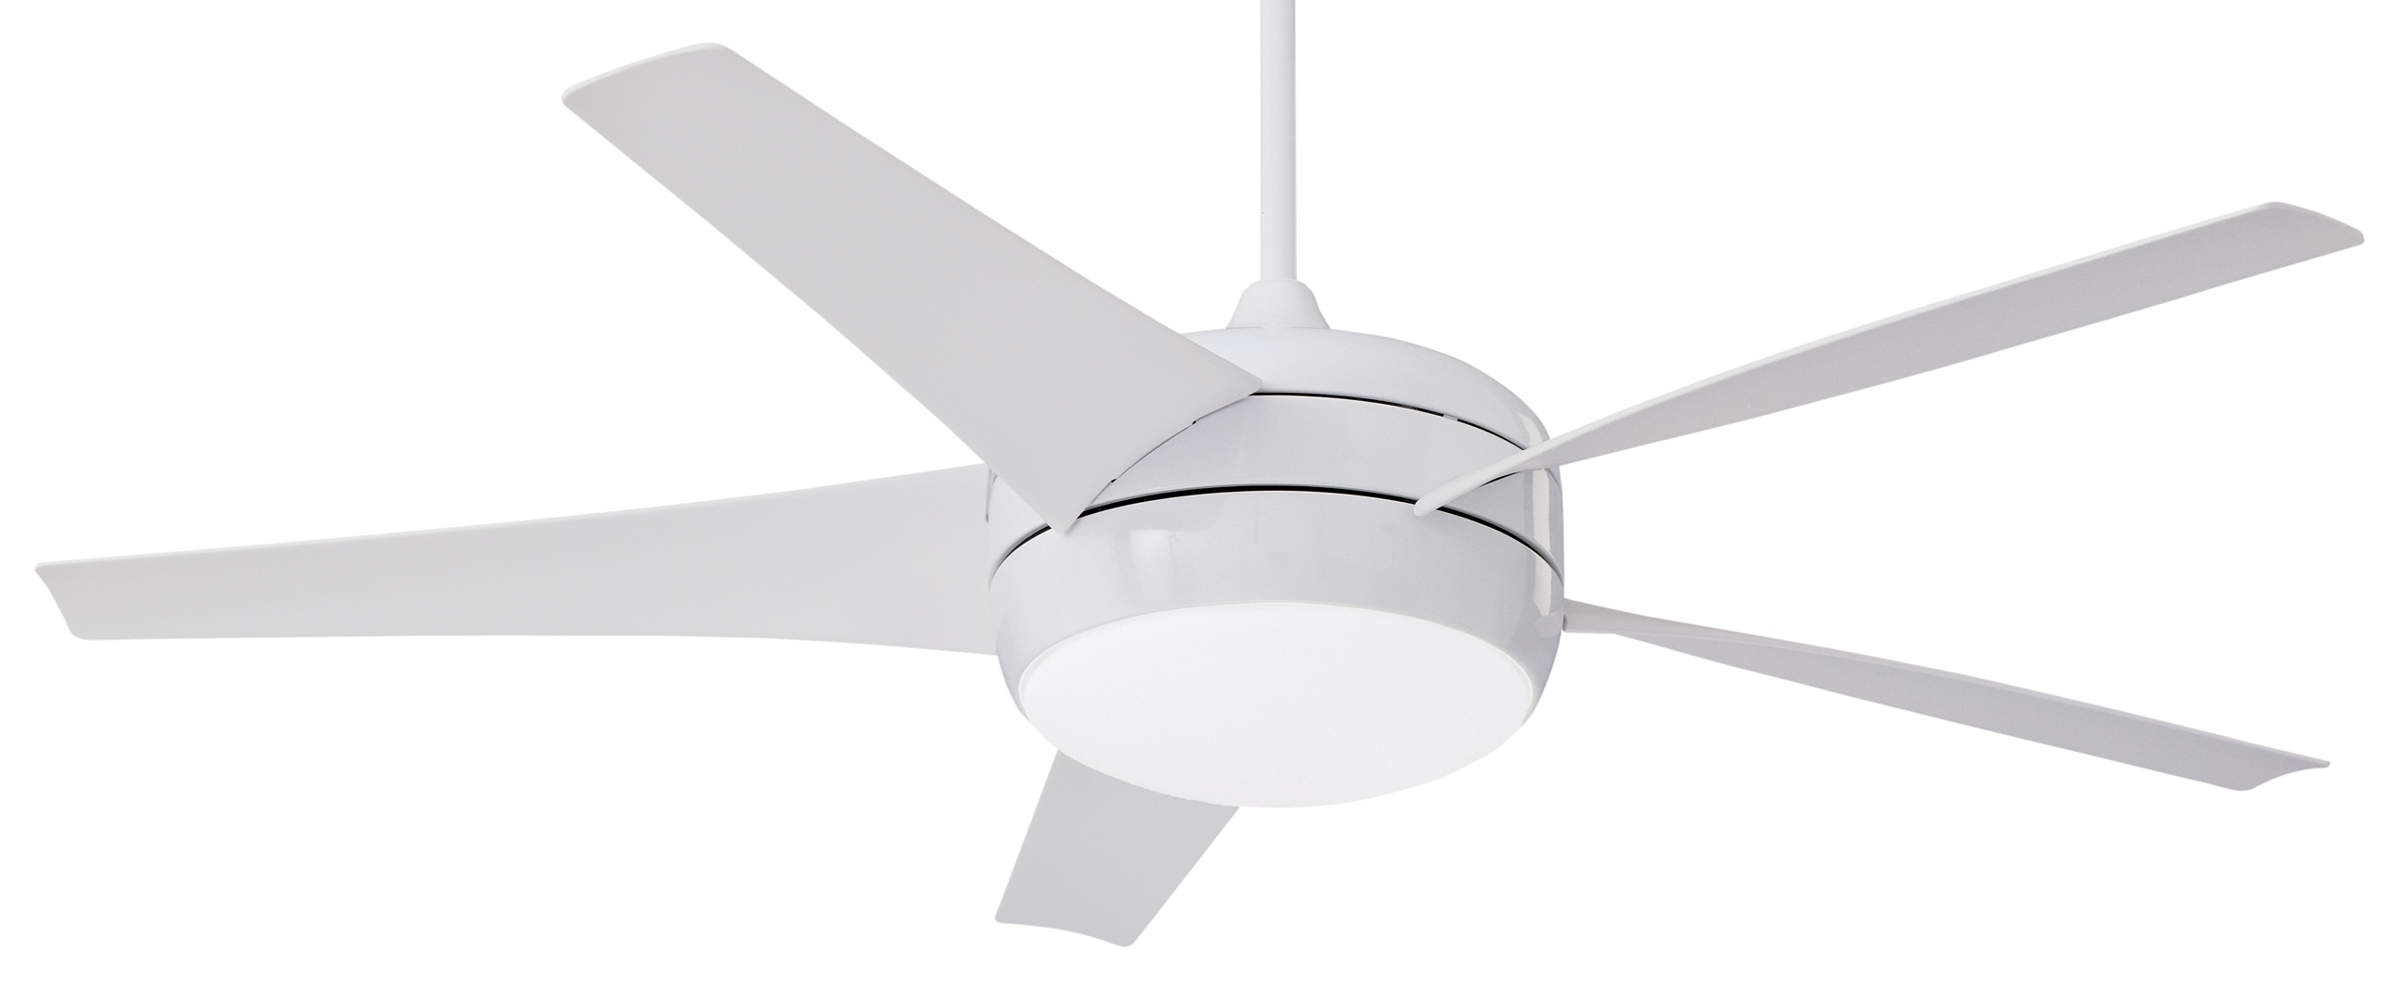 Most Recently Released White Outdoor Ceiling Fans With Lights Inside Emerson Midway Eco Dc Motor Ceiling Fan Cfww In Gloss White With (View 15 of 20)